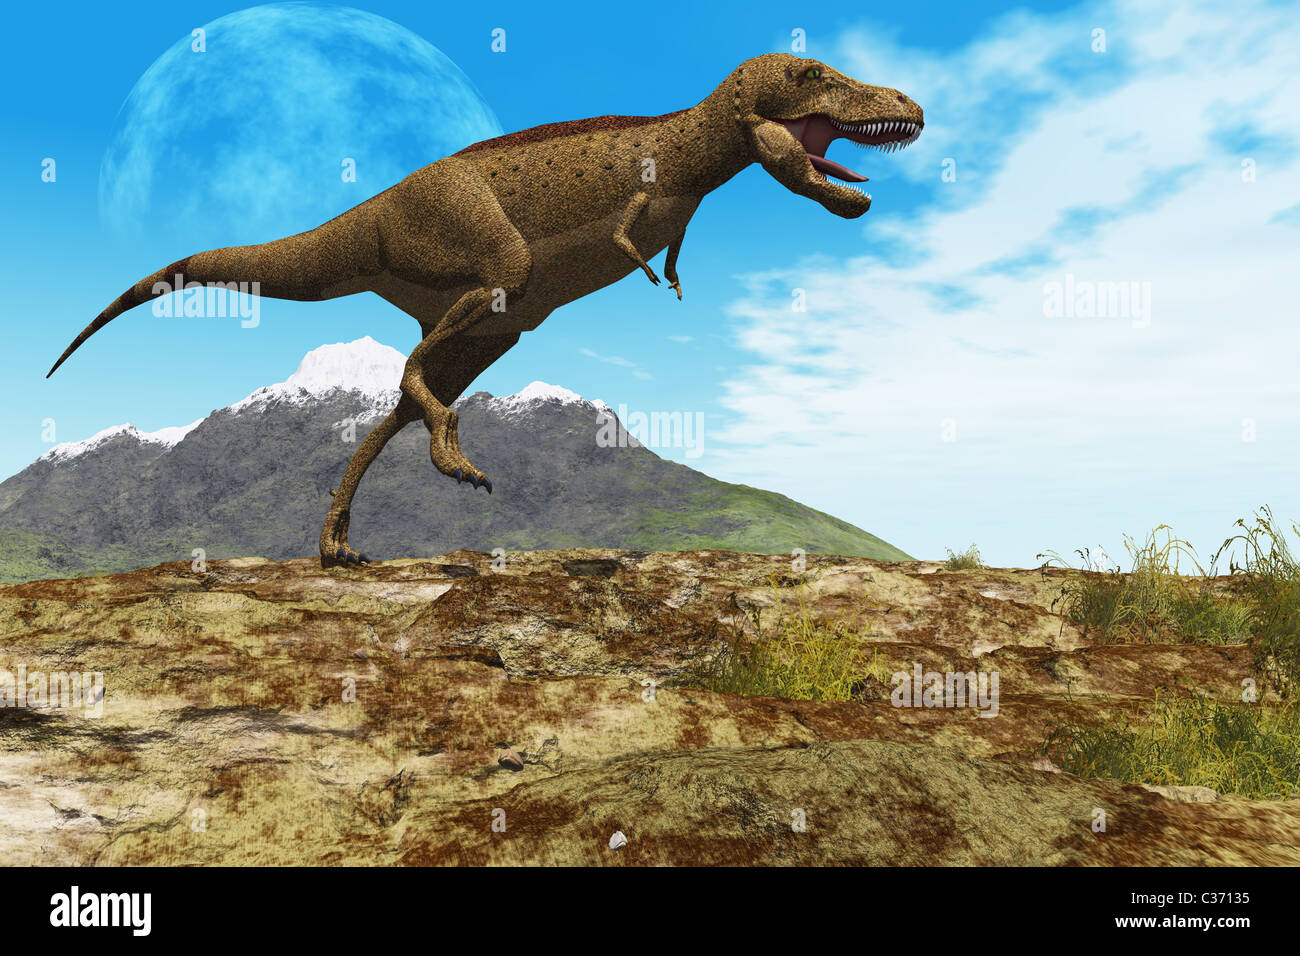 A Tyrannosaurus Rex dinosaur walks through his territory. - Stock Image